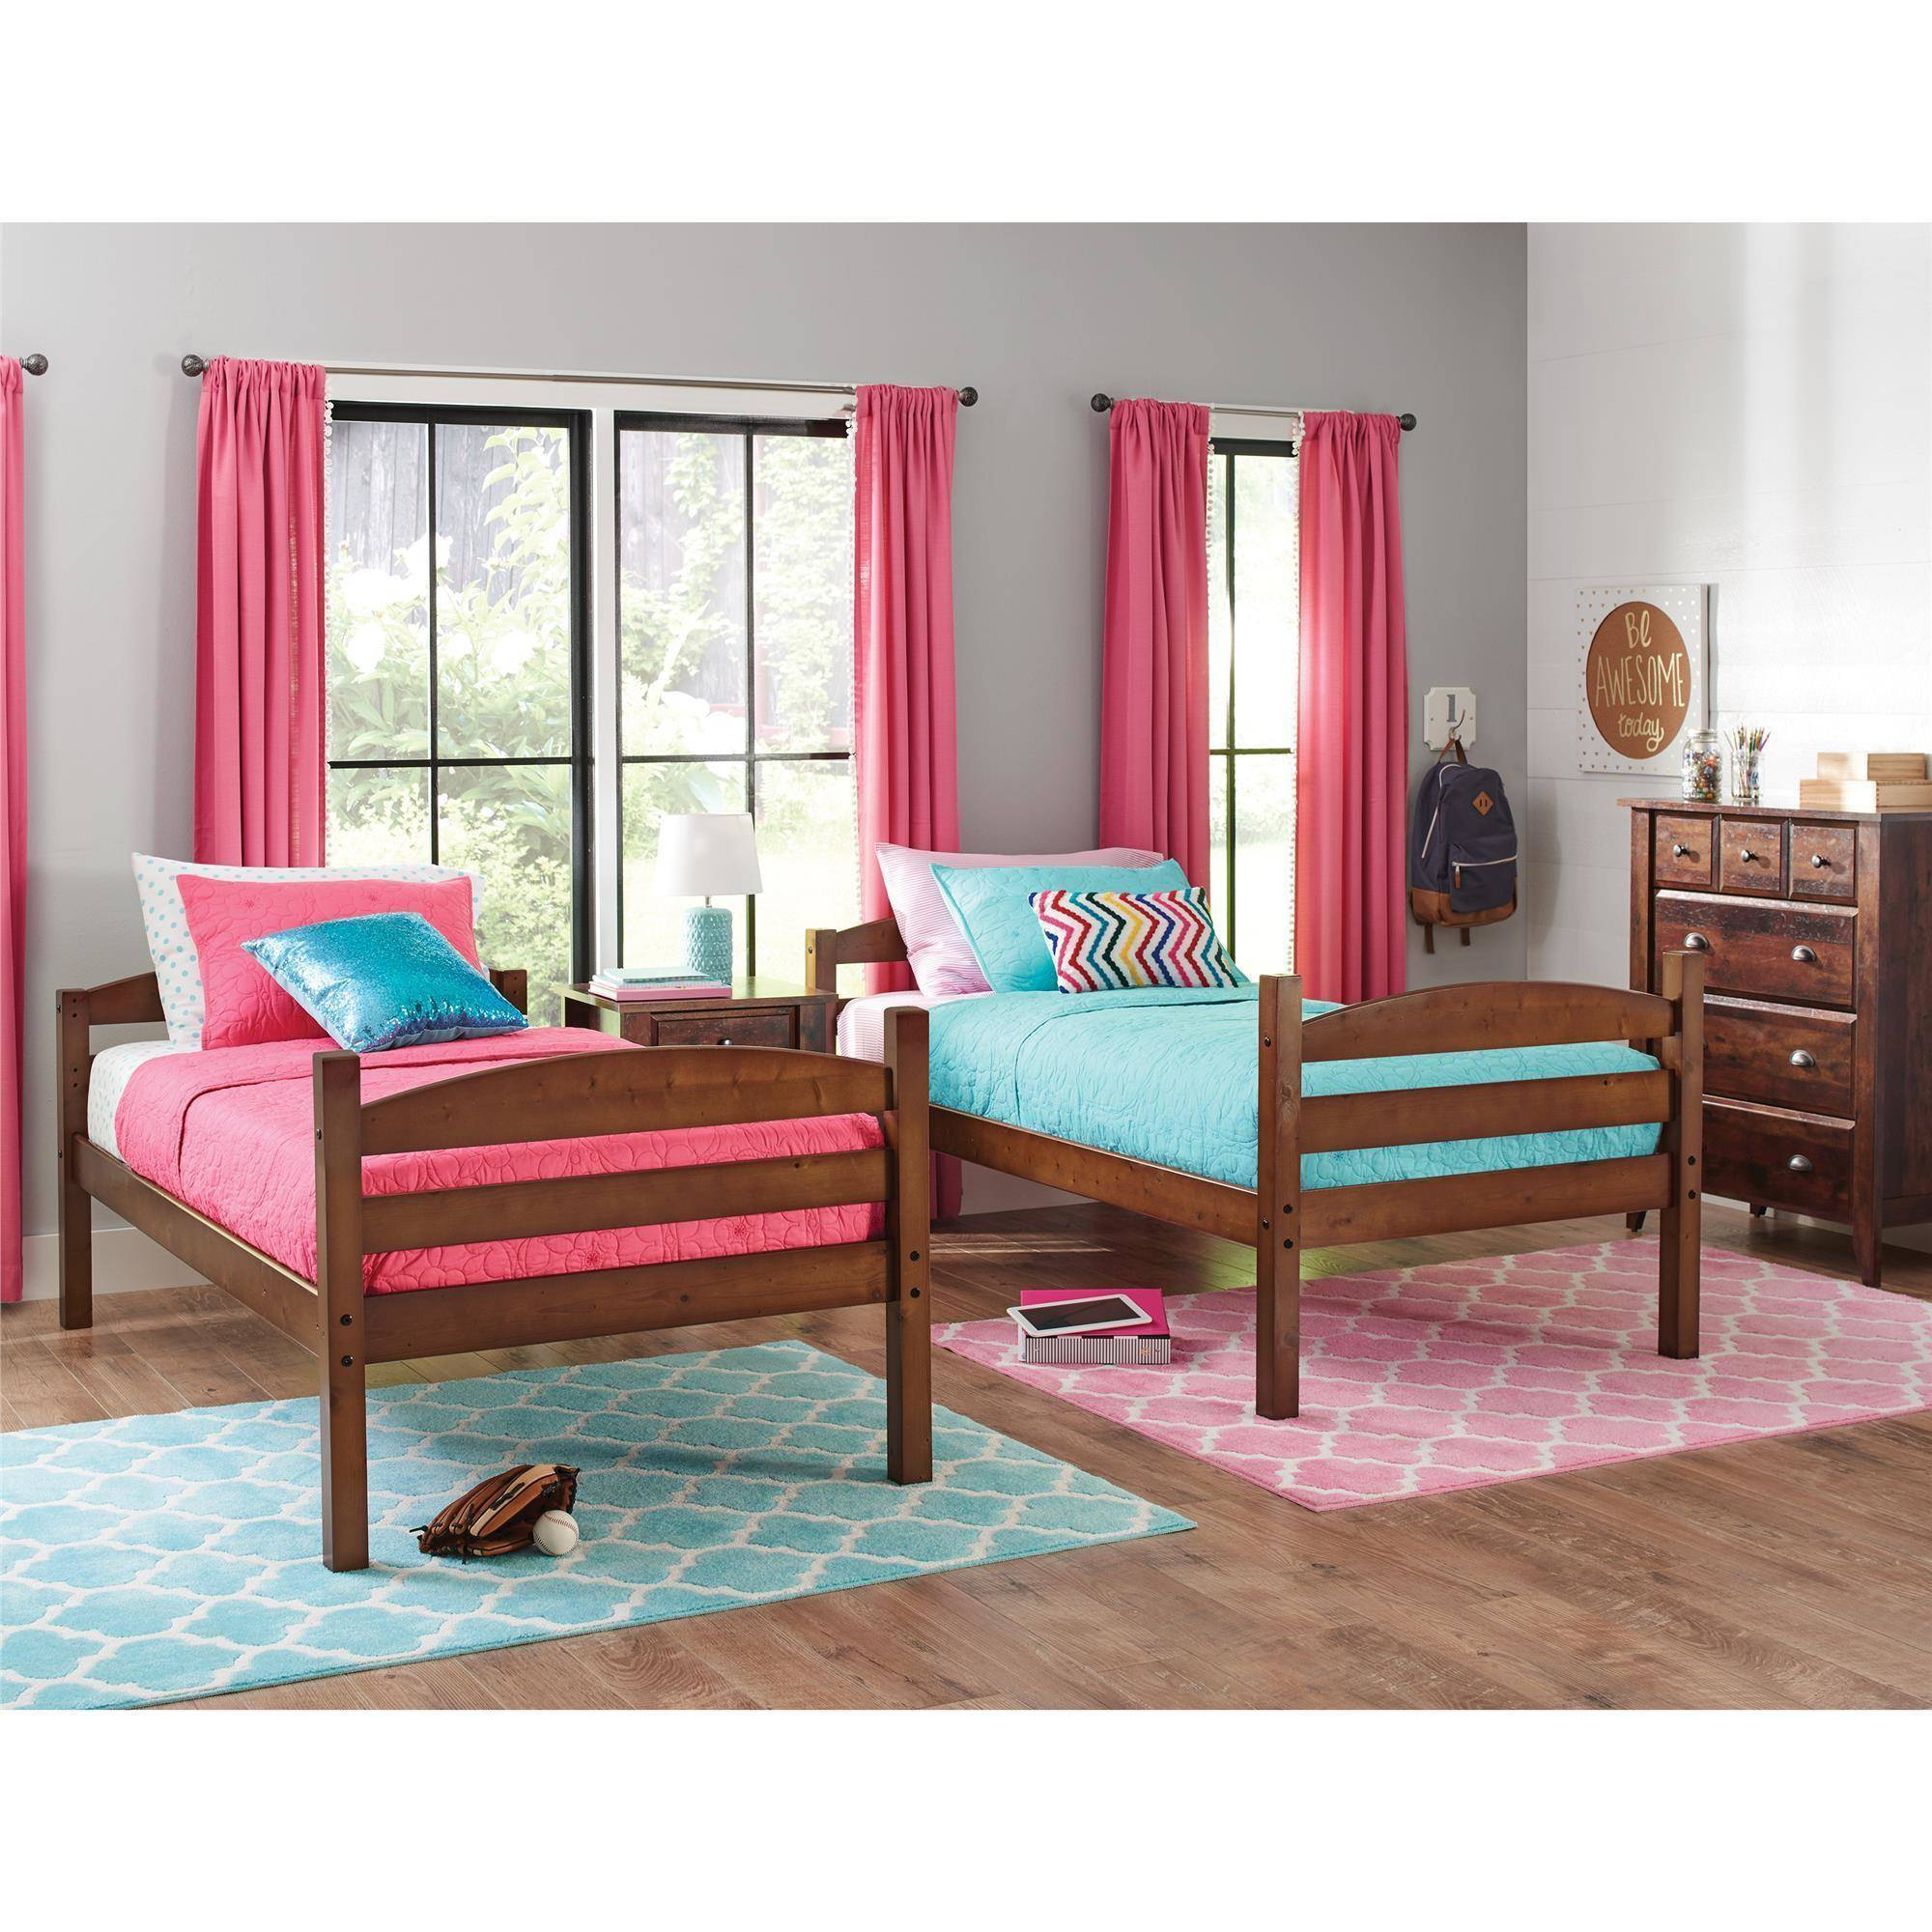 Walmart Bunk Beds Twin Over Futon Home Decor